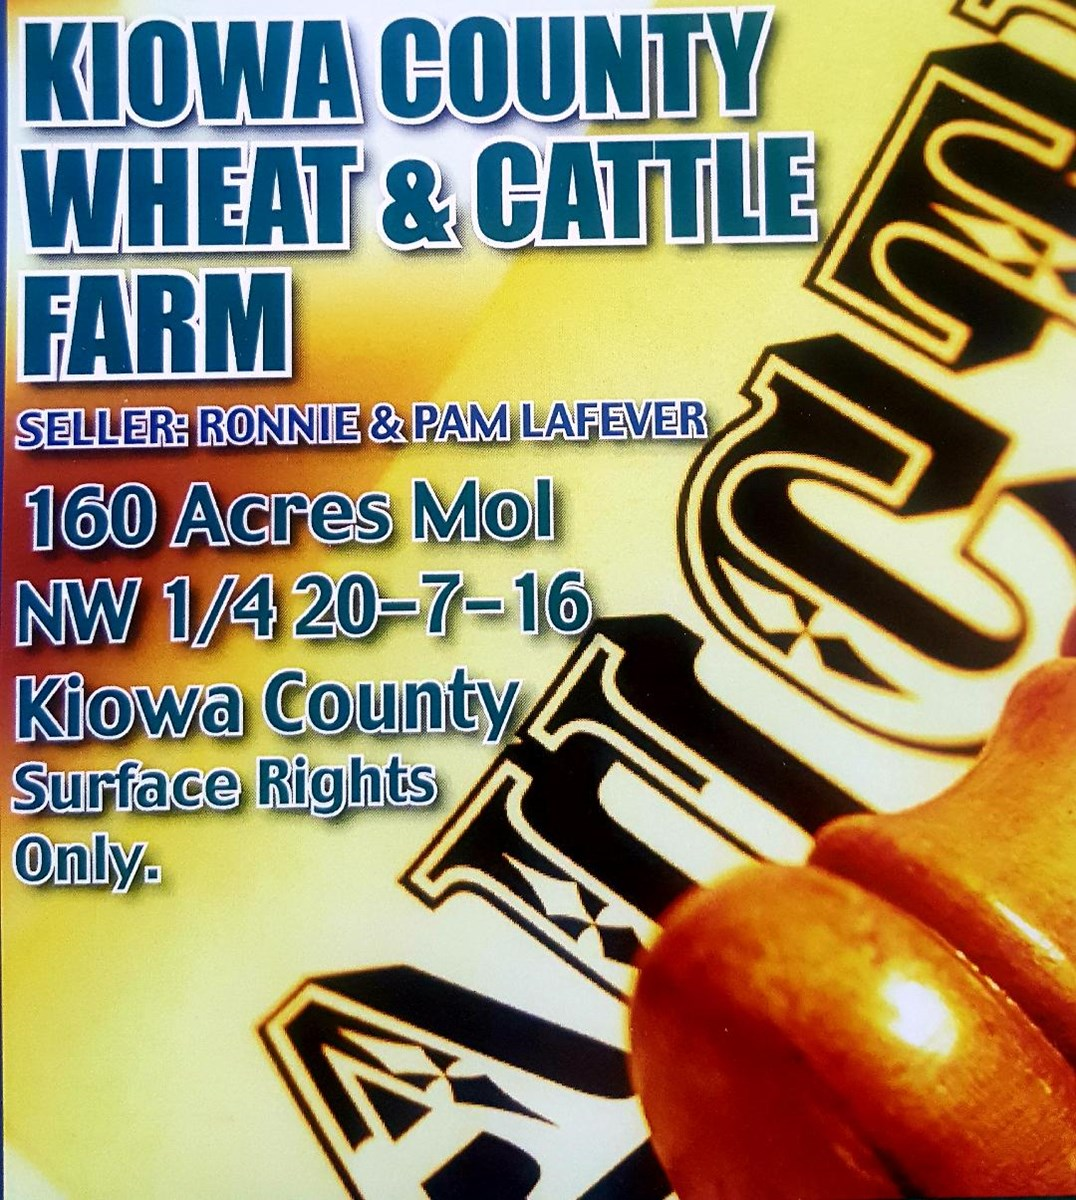 Kiowa County Farm For Sale 160 Acres